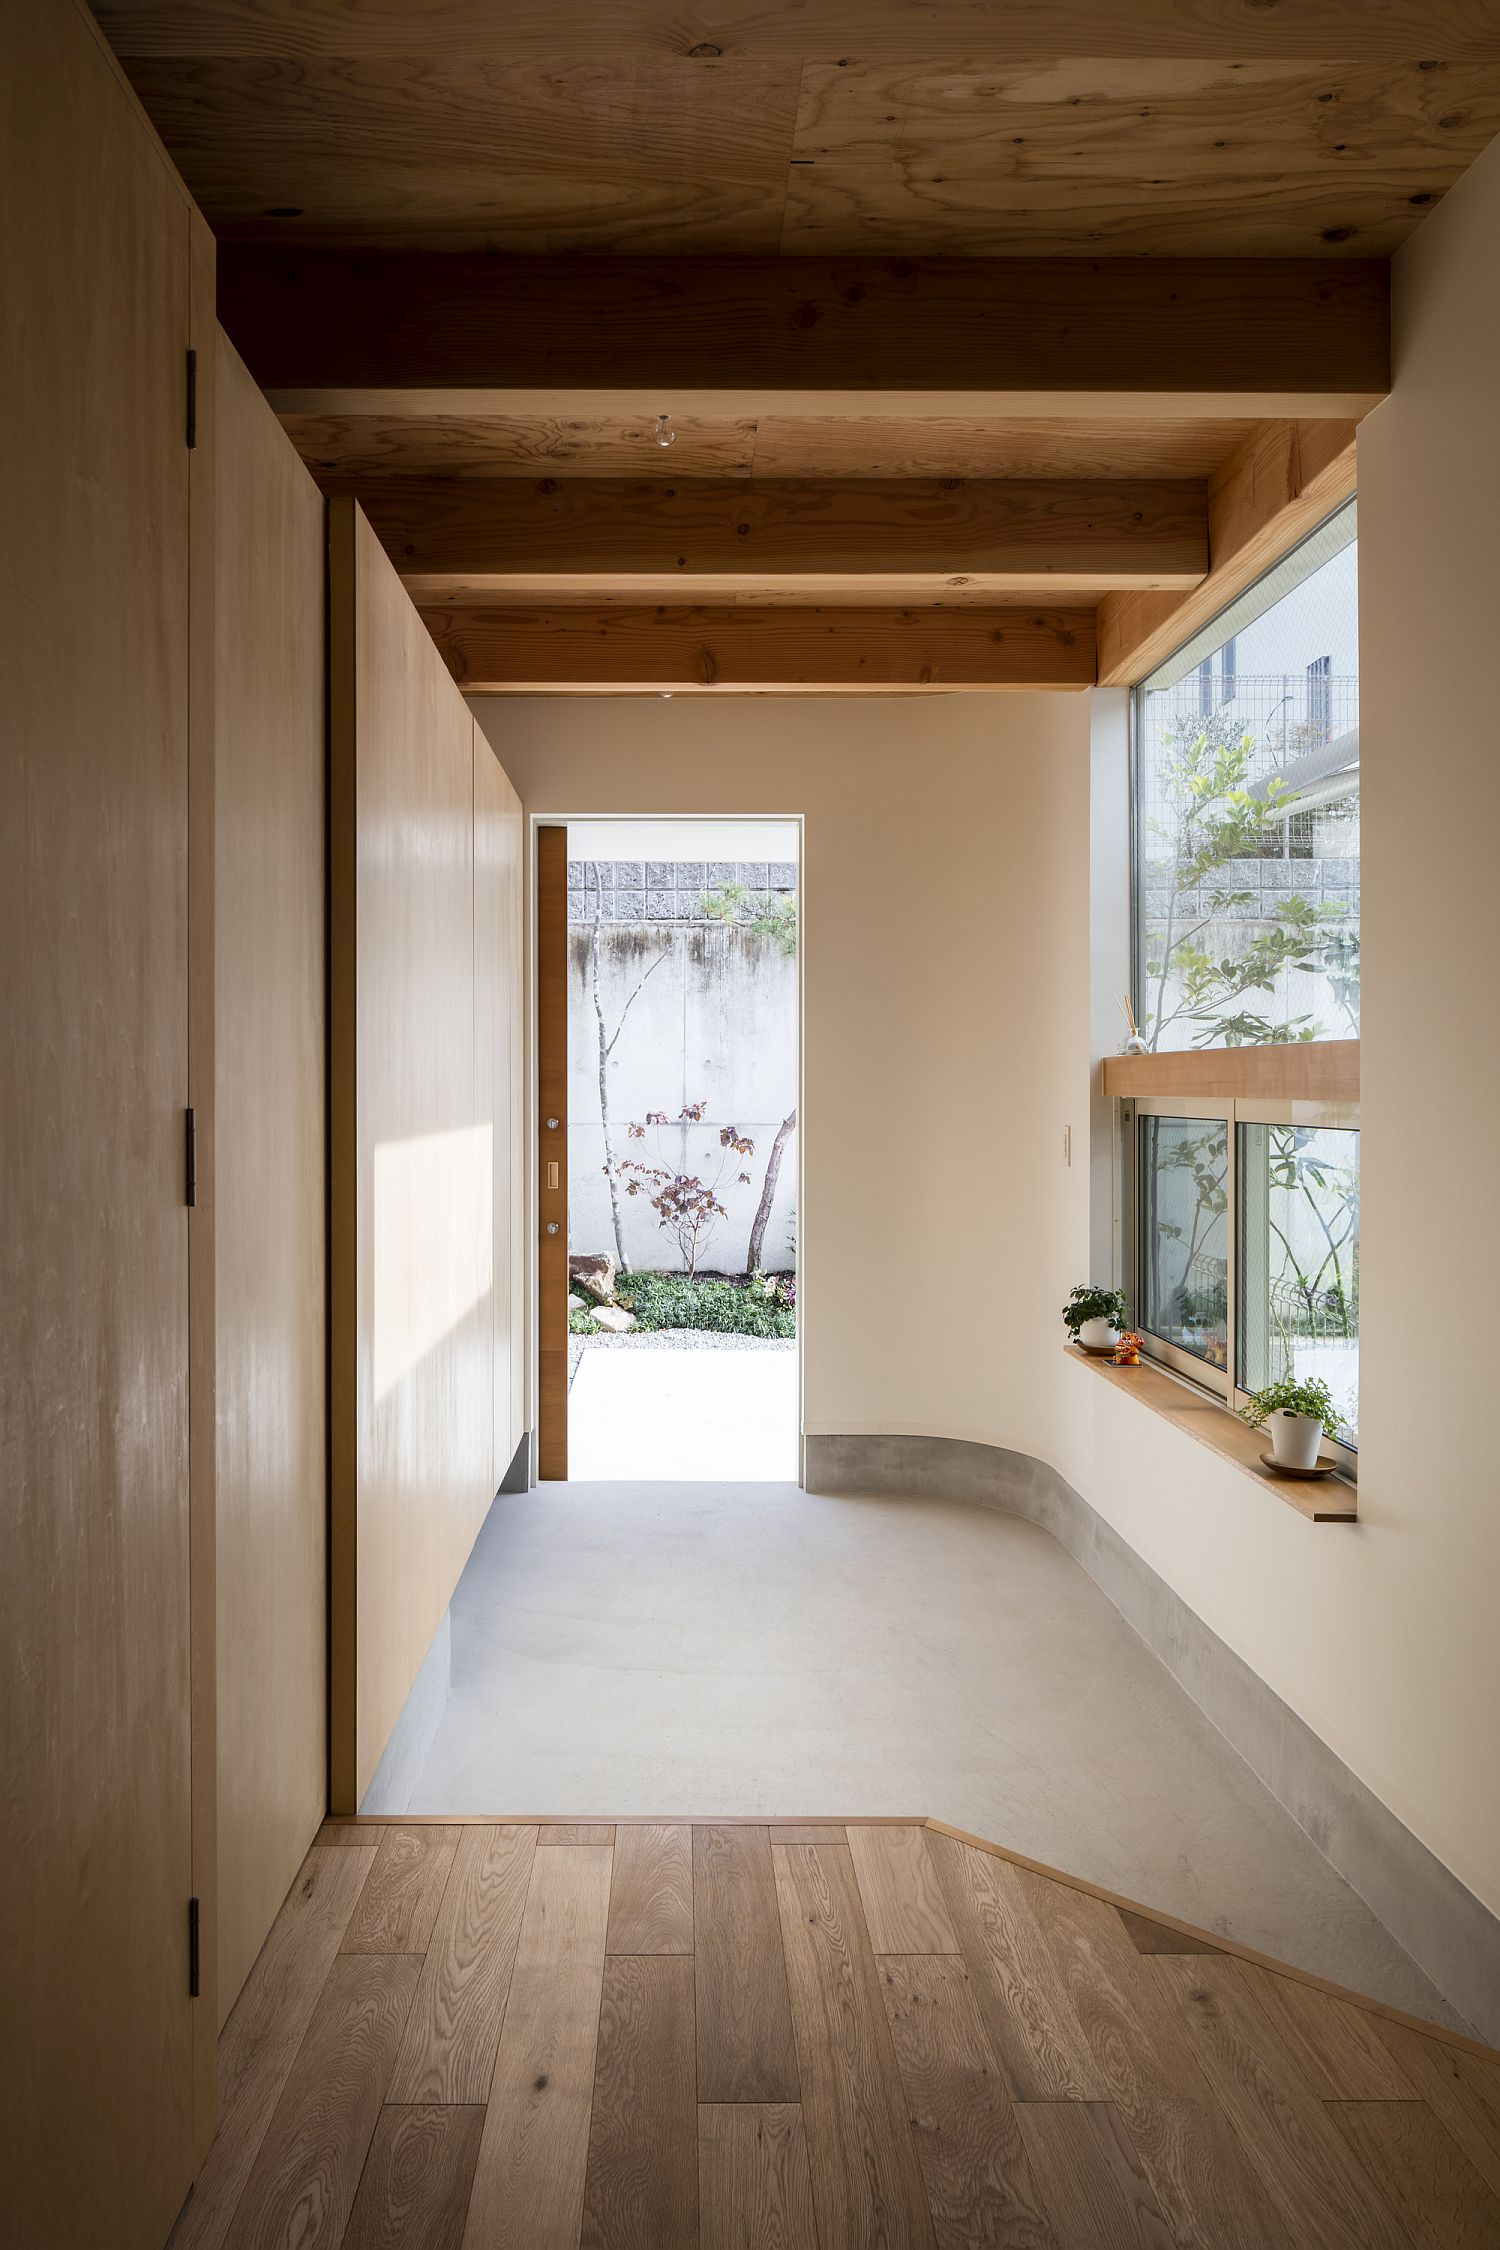 Entry and Japanese room welcome guests at this narrow home that is space-savvy and eco-friendly